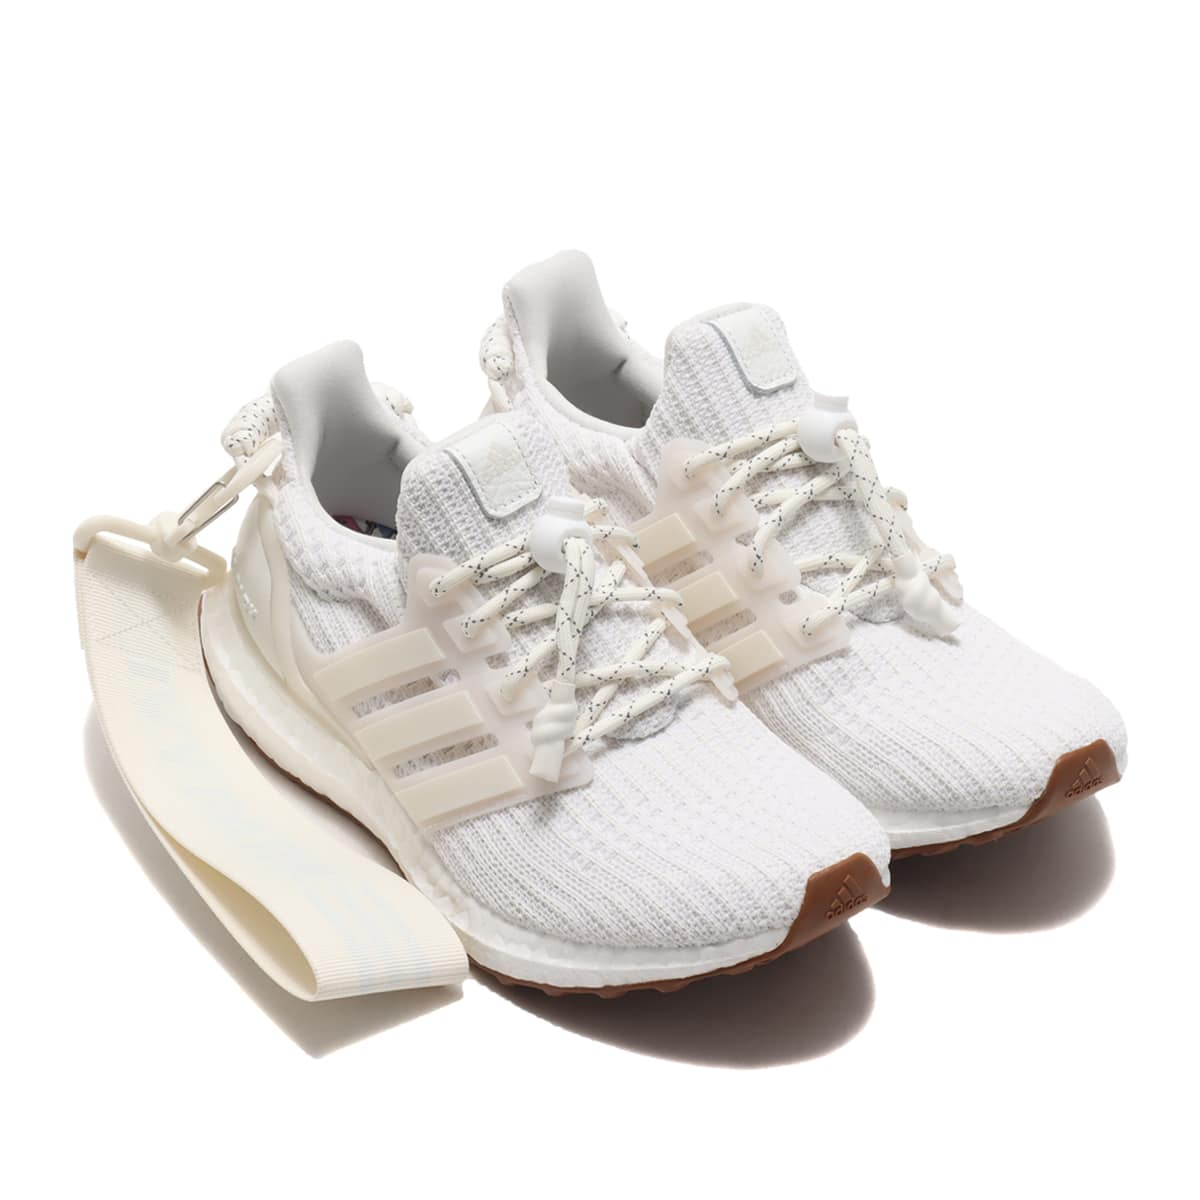 adidas IVP ULTRA BOOST OG CORE WHITE/OFF WHITE/WILD BROWN 21SS-S_photo_large